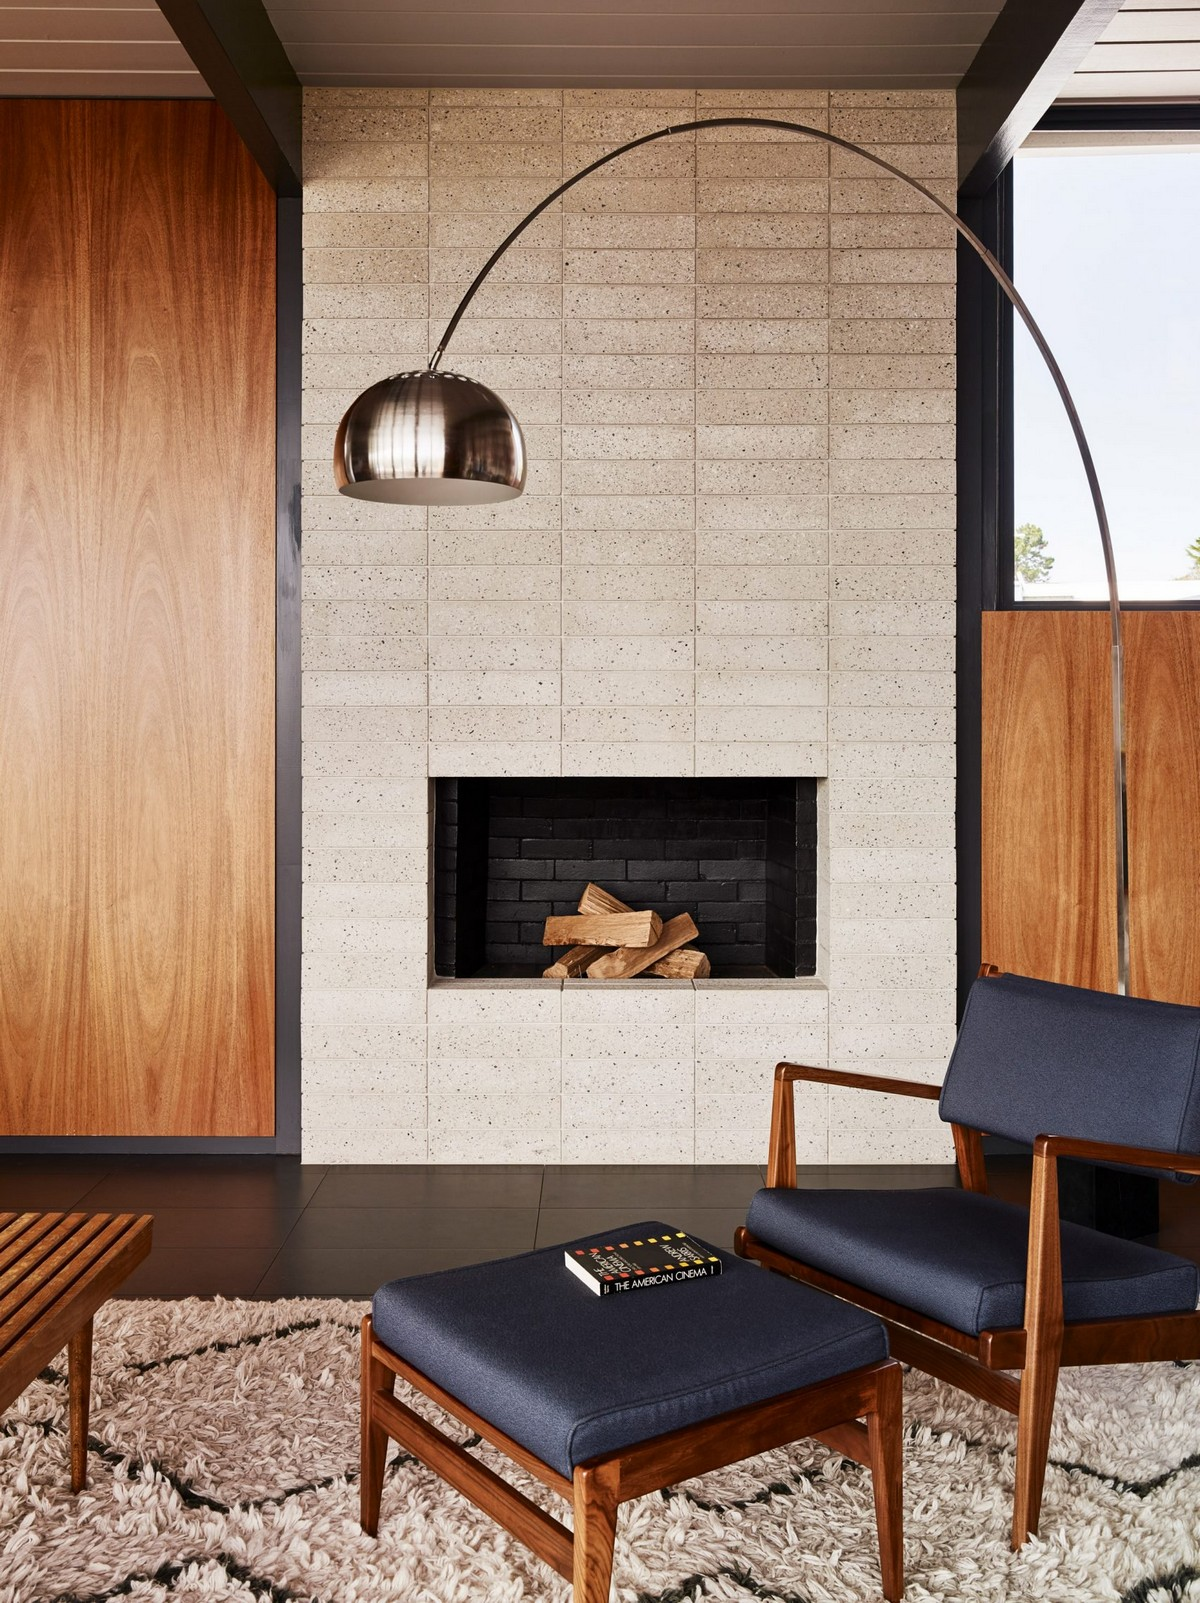 San Francisco Home Gets a Mid-Century Look by Michael Hennessey | A 1960s home in California built by Joseph Eichler, the father of America's modernist housing. #interiordesign #homedesign #midcentury #homedecor #modernhome  San Francisco Home Gets a Mid-Century Look by Michael Hennessey diamond heights 1956 eichler home michael hennessey architecture san francisco california usa renovation dezeen 2364 col 6 1704x2276